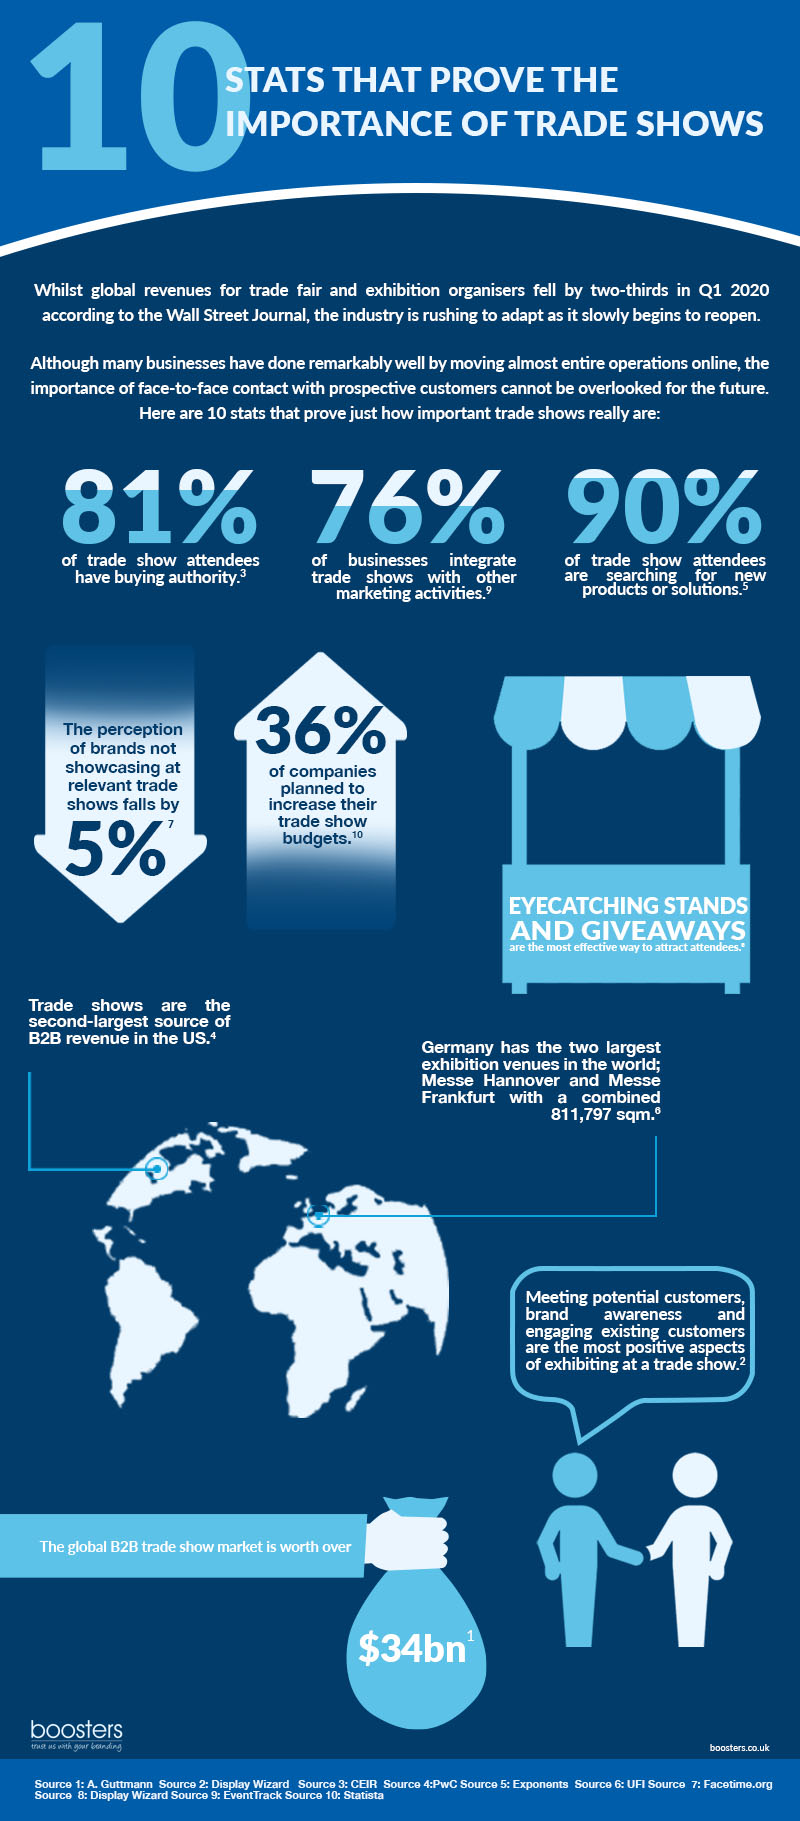 10 Stats That Prove The Importance Of Trade Shows #infographic #Business #Trade Shows #Trade #B2B